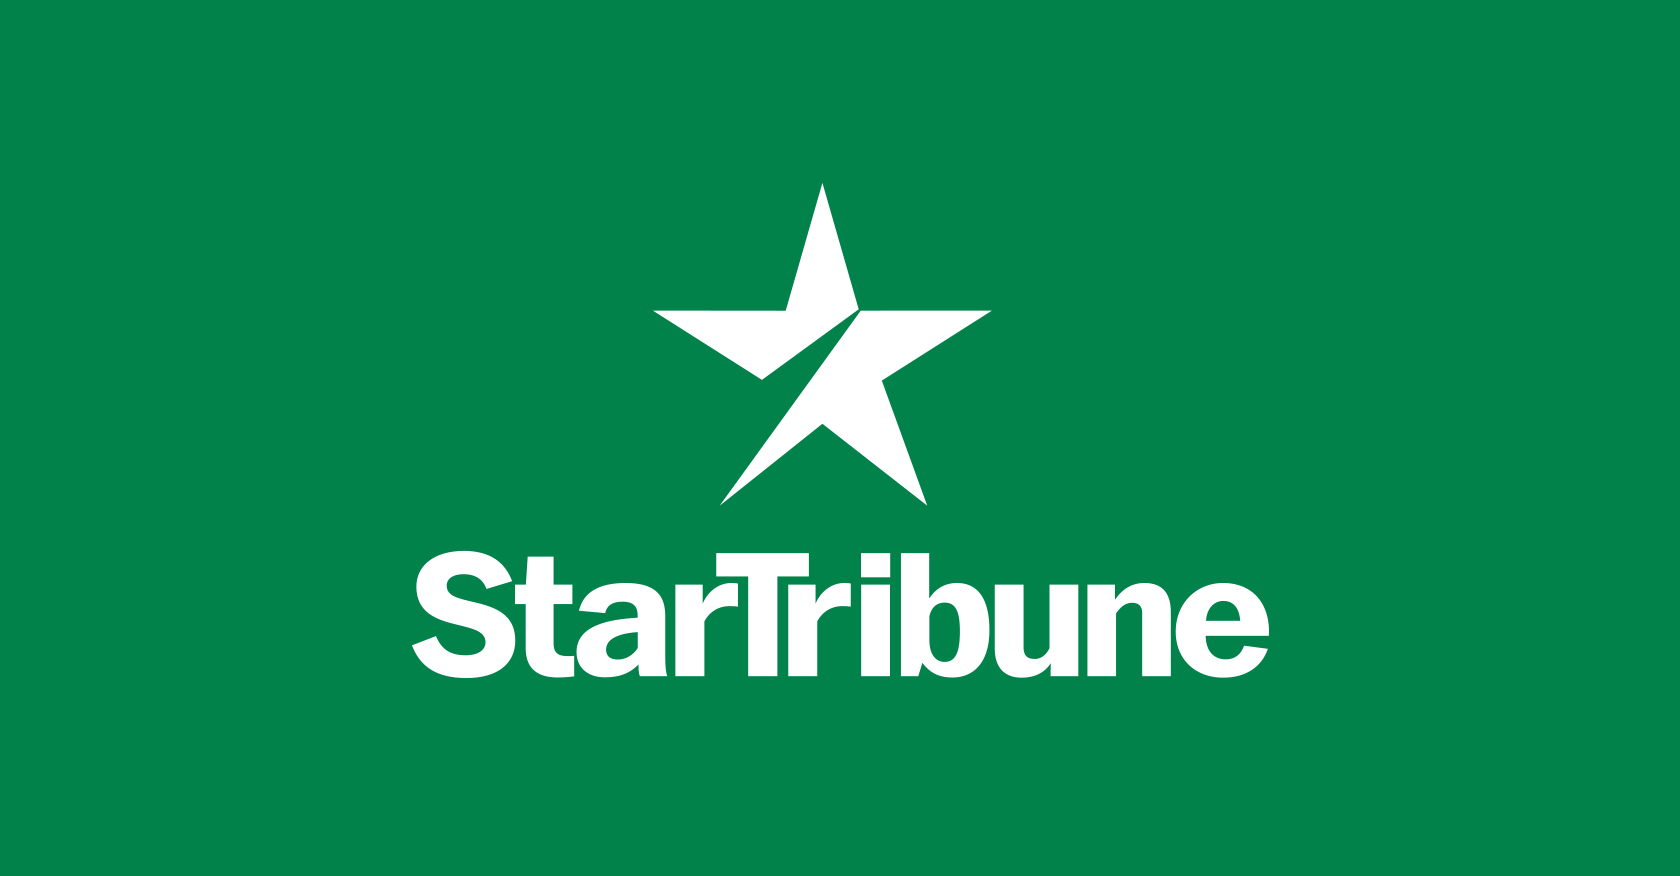 The latest from the StarTribune